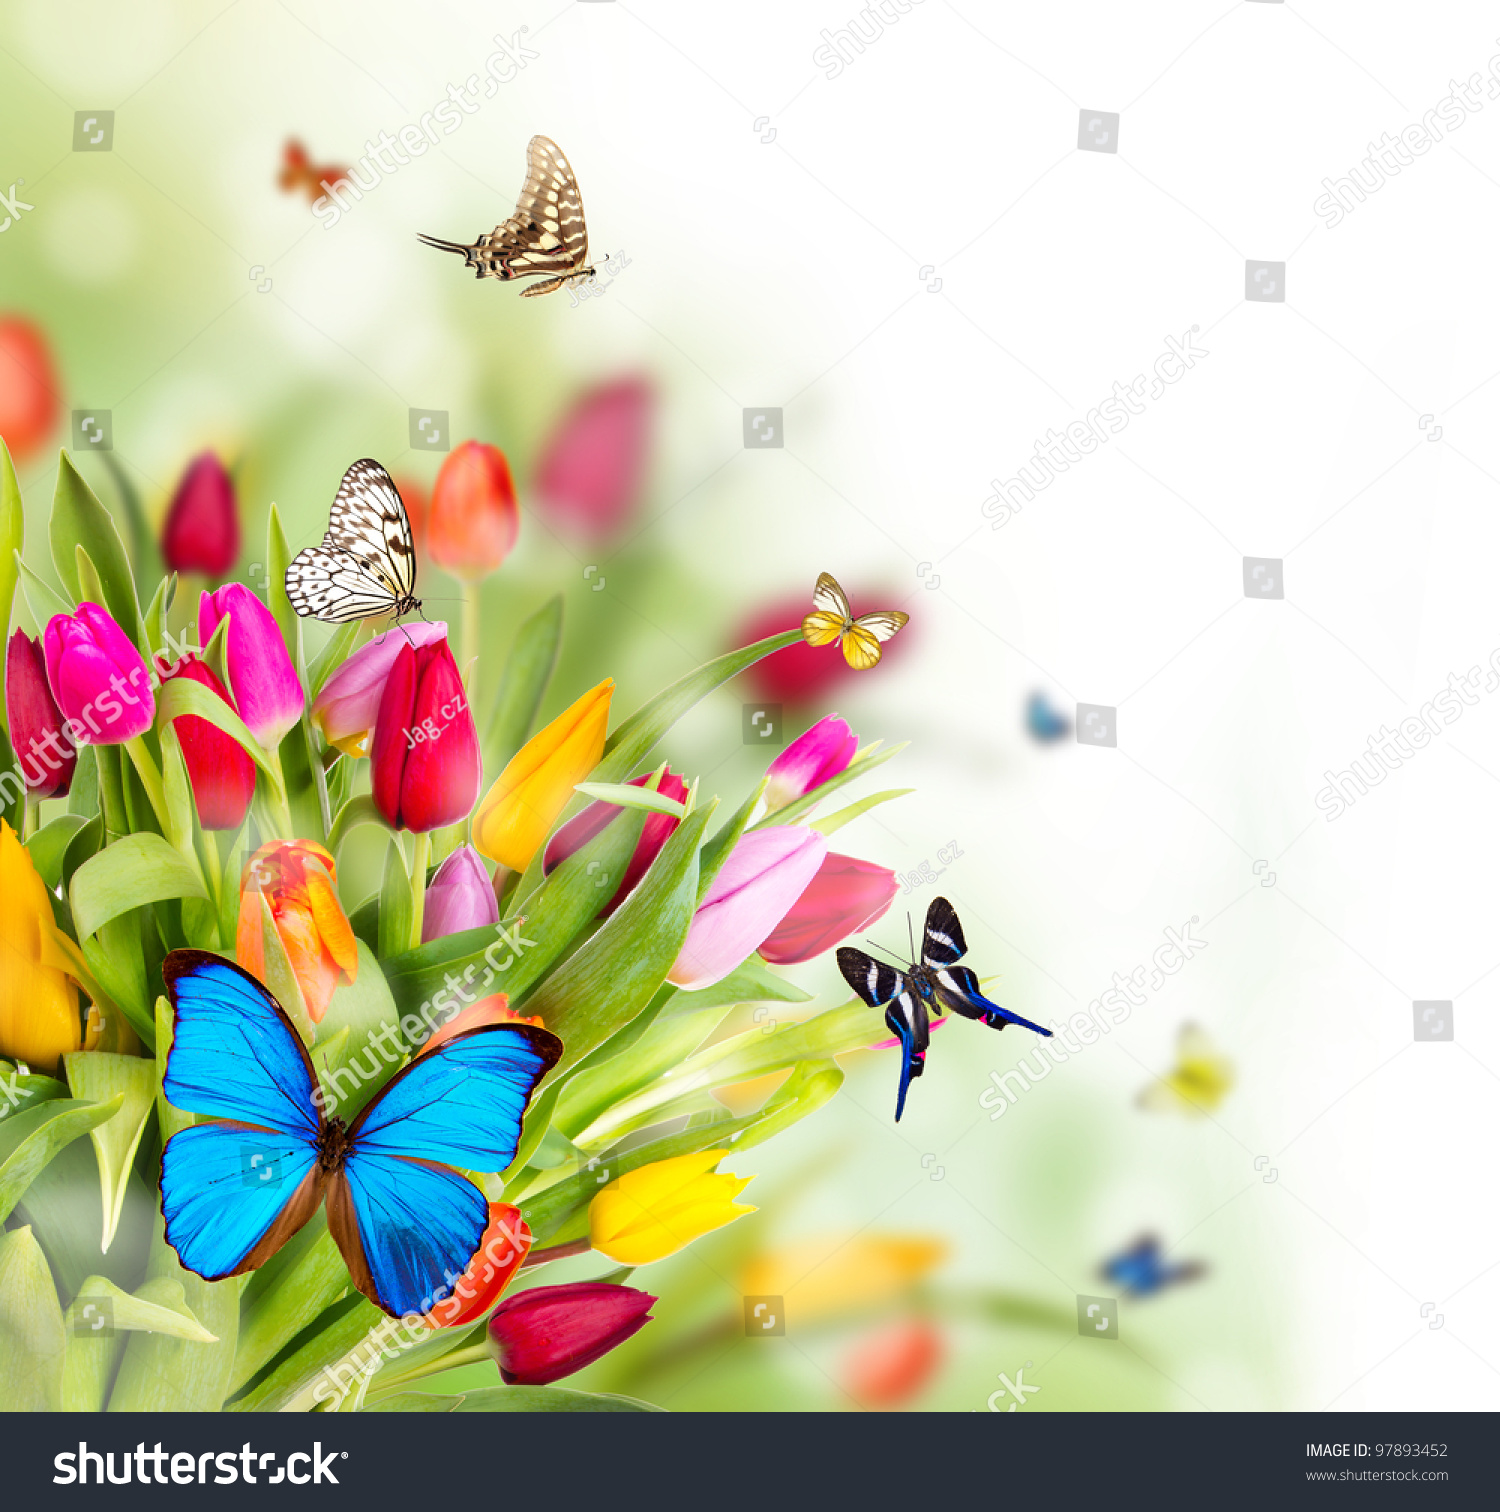 Beautiful Spring Flowers Butterflies Stock Photo Edit Now 97893452